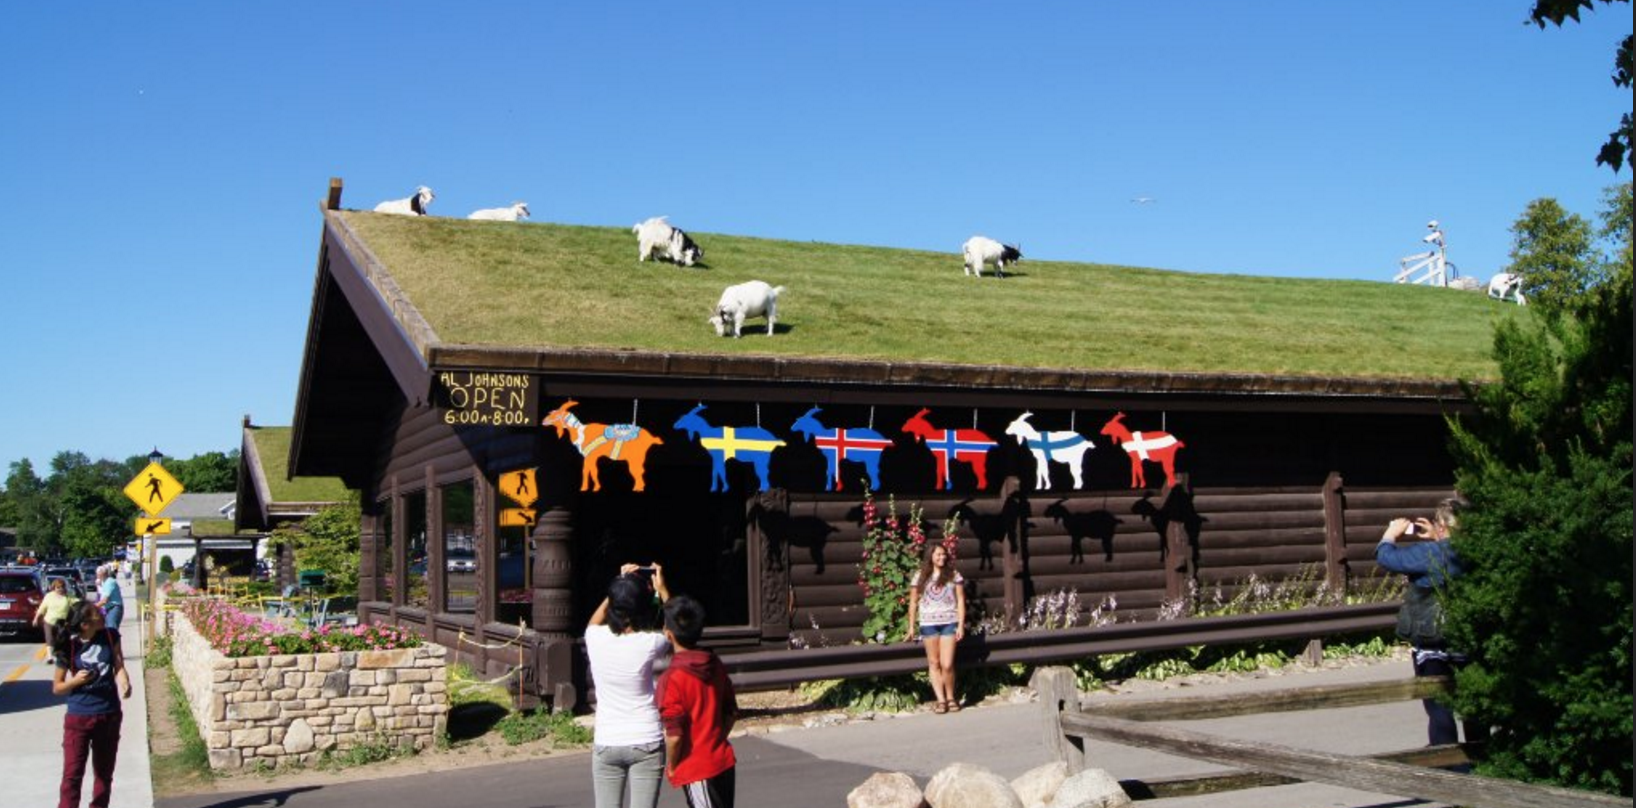 This Quirky Wisconsin Restaurant Has Goats That Eat The Roof